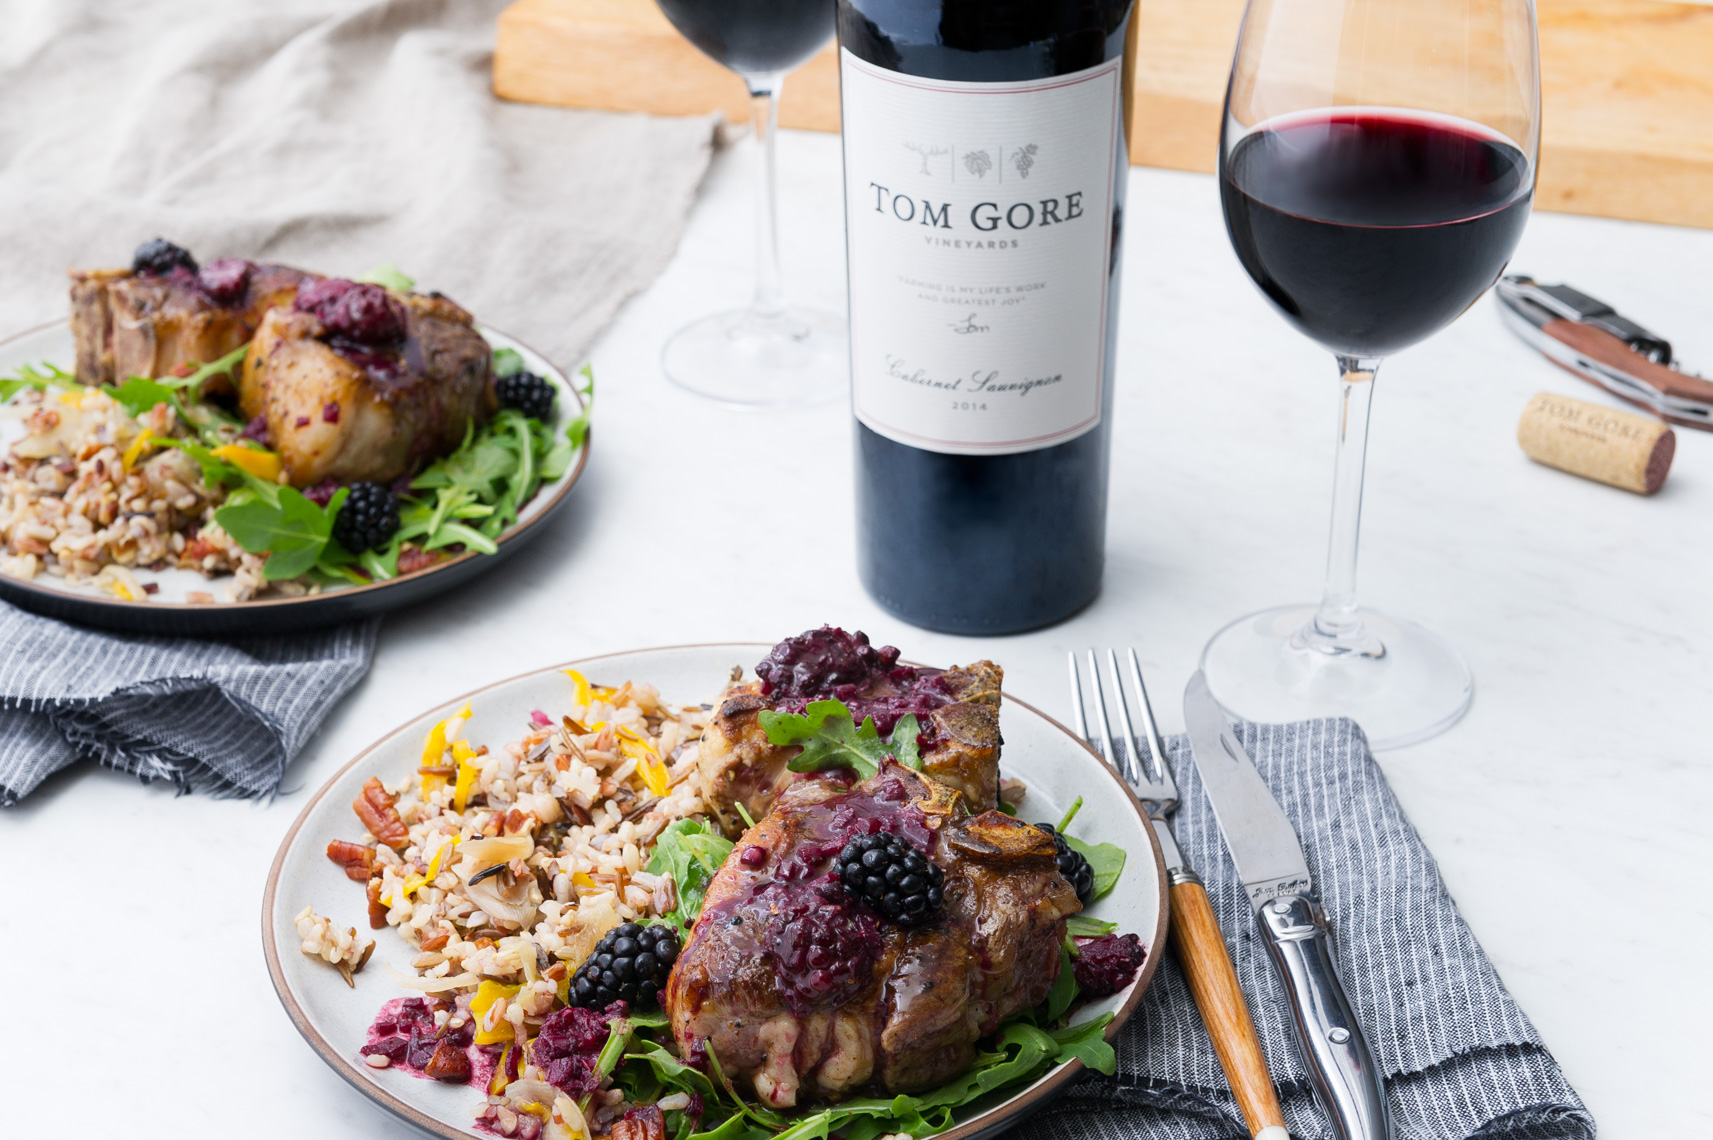 NYC + Chicago Food and Beverage Photographer - Tom Gore Wines for Bon Appetit